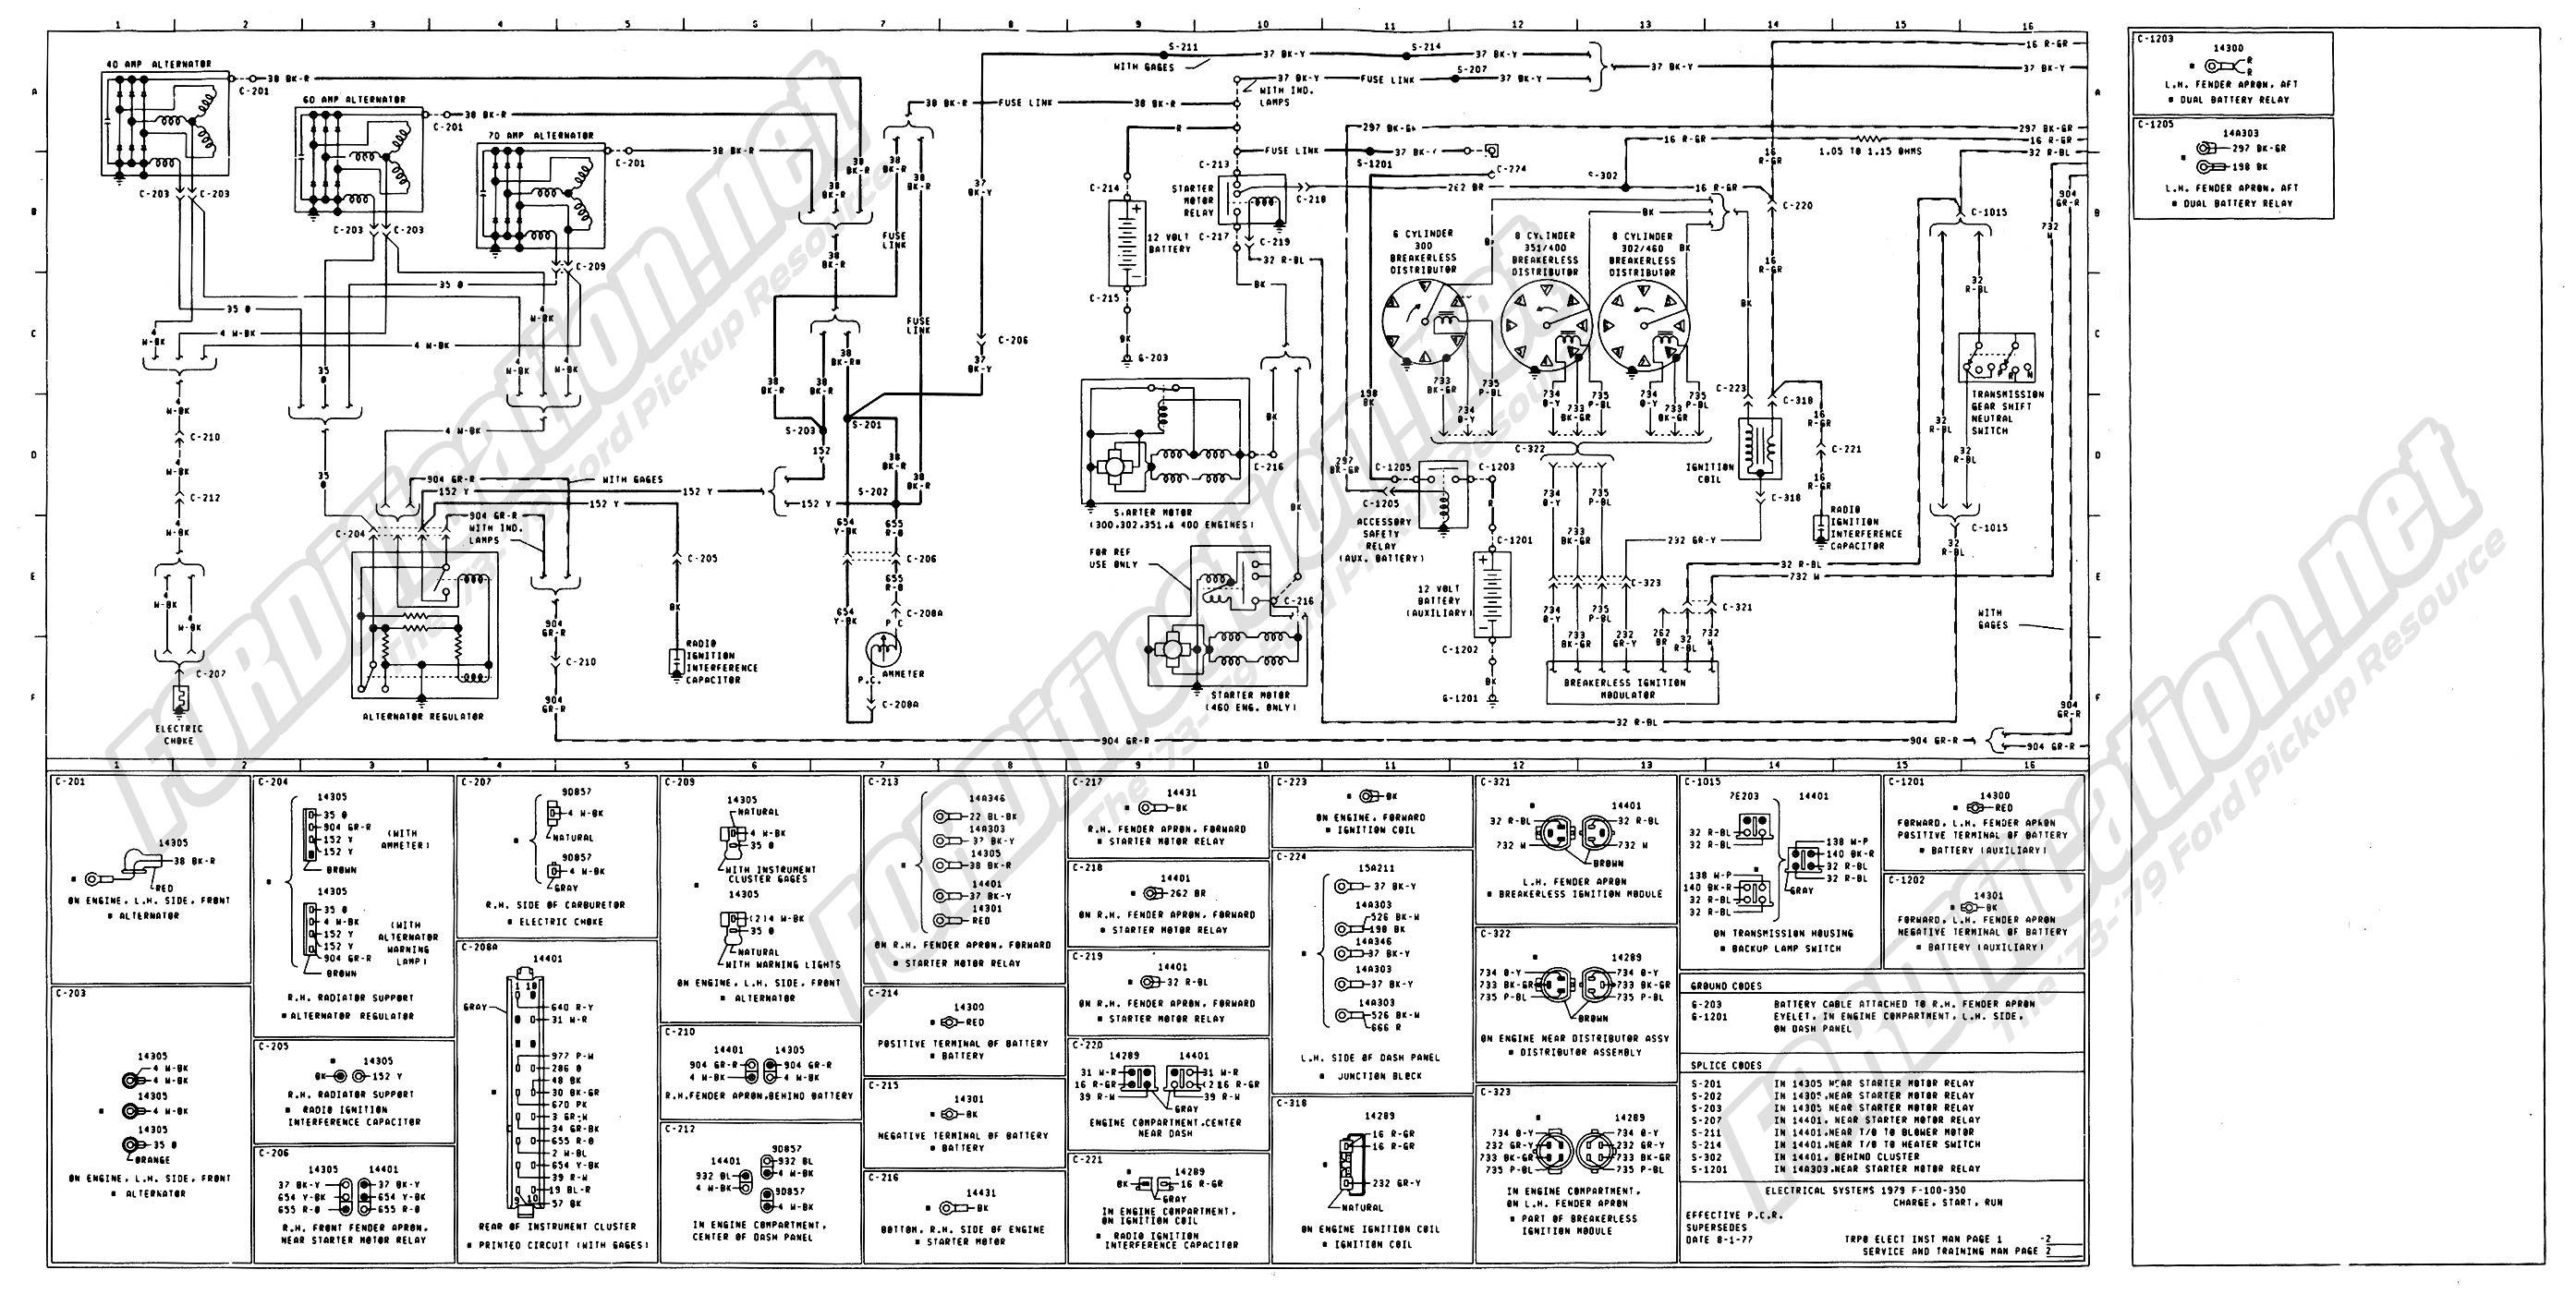 Ford 5 0 Alternator Wiring Diagram Library Car 1973 1979 Truck Diagrams Schematics Fordification Net 76 F150 79